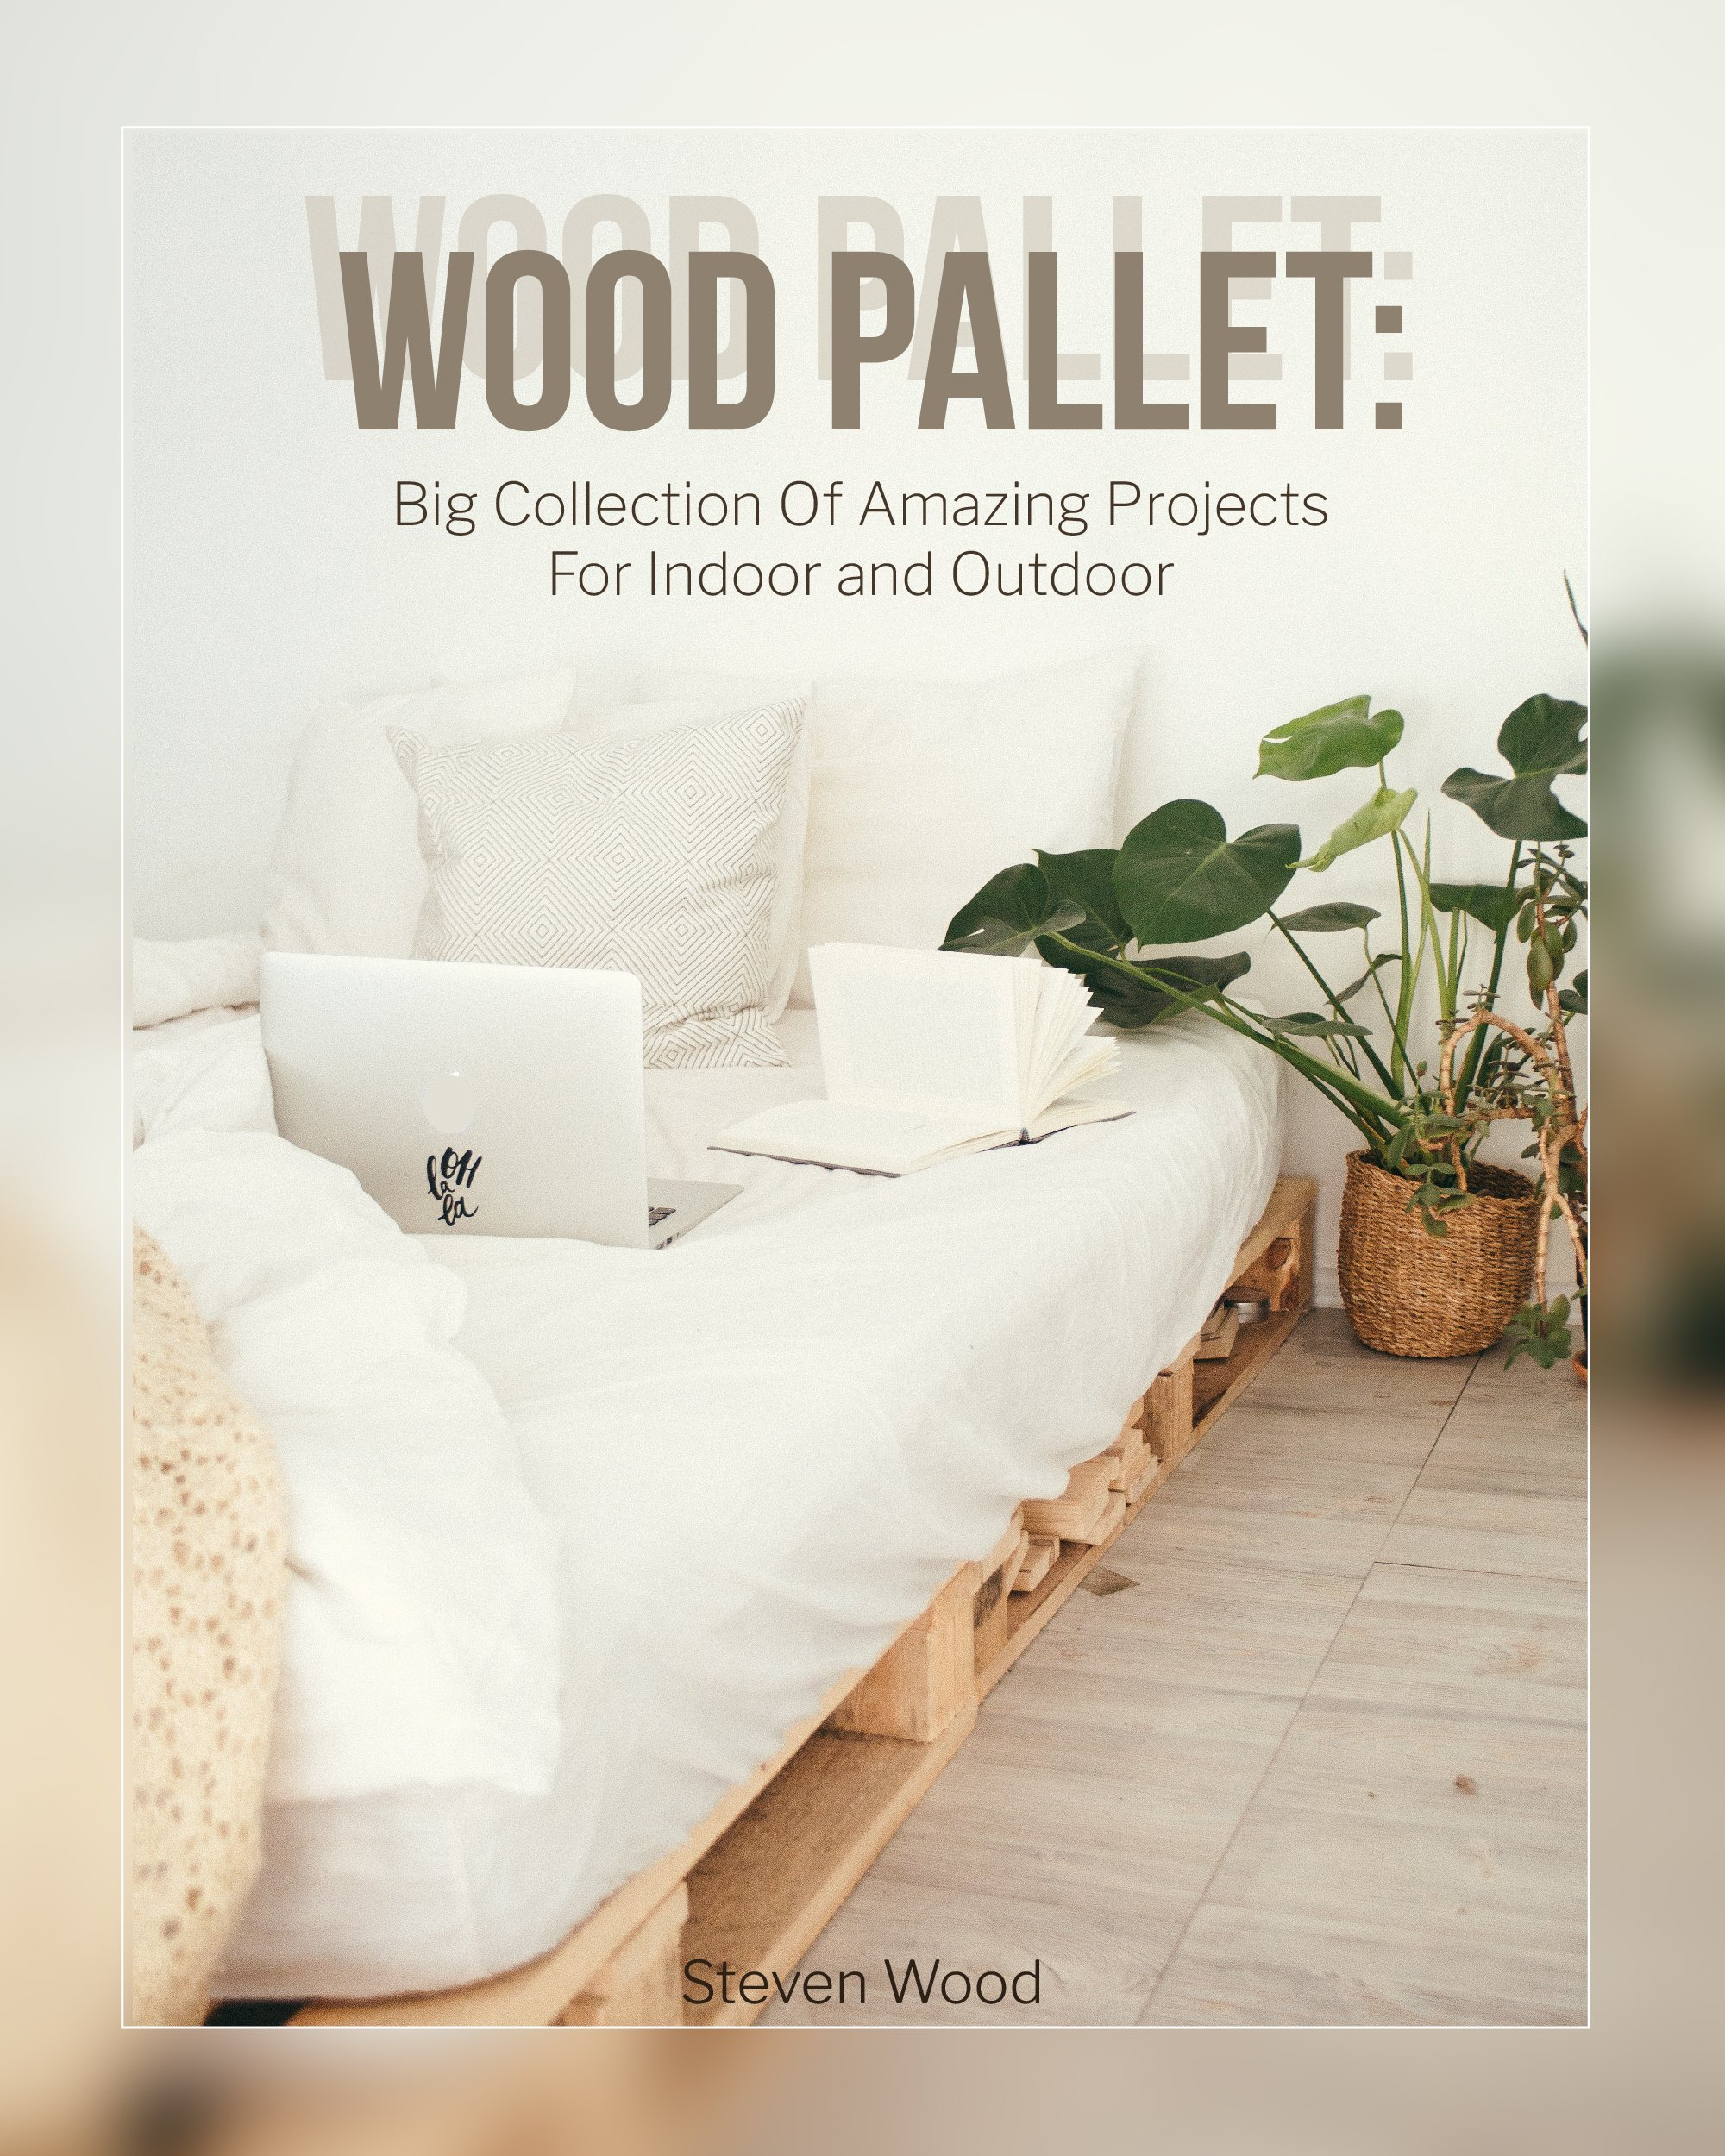 Wood Pallet: Big Collection Of Amazing Projects For Indoor and Outdoor (English Edition)